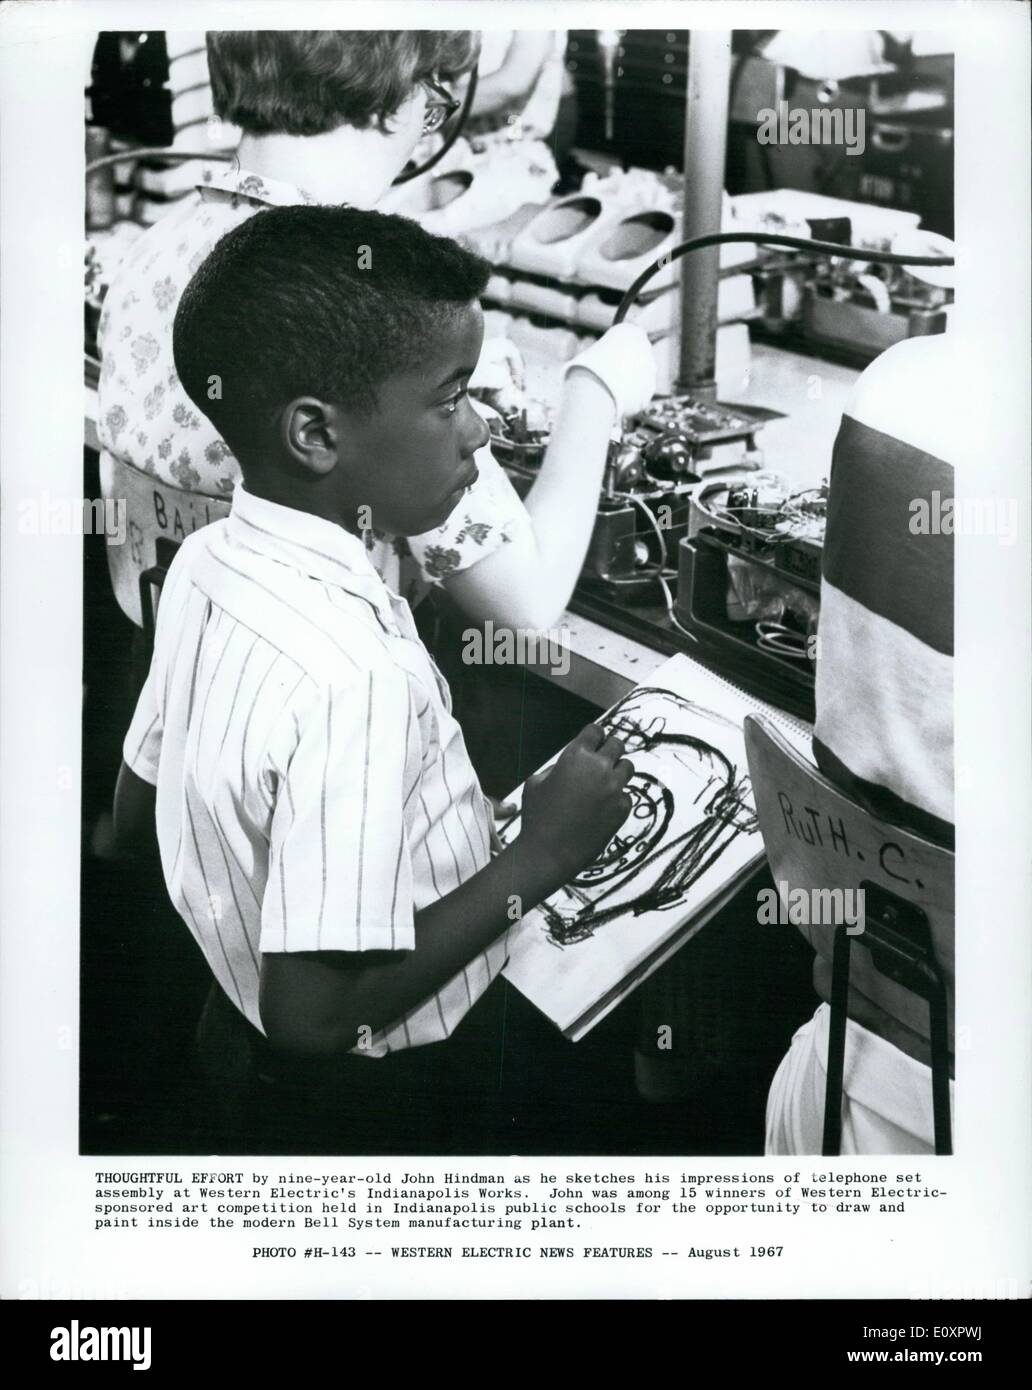 Aug. 08, 1967 - Thoughtful Effort by nine-year-old John Hind-man as he sketches his impression of telephone set - Stock Image